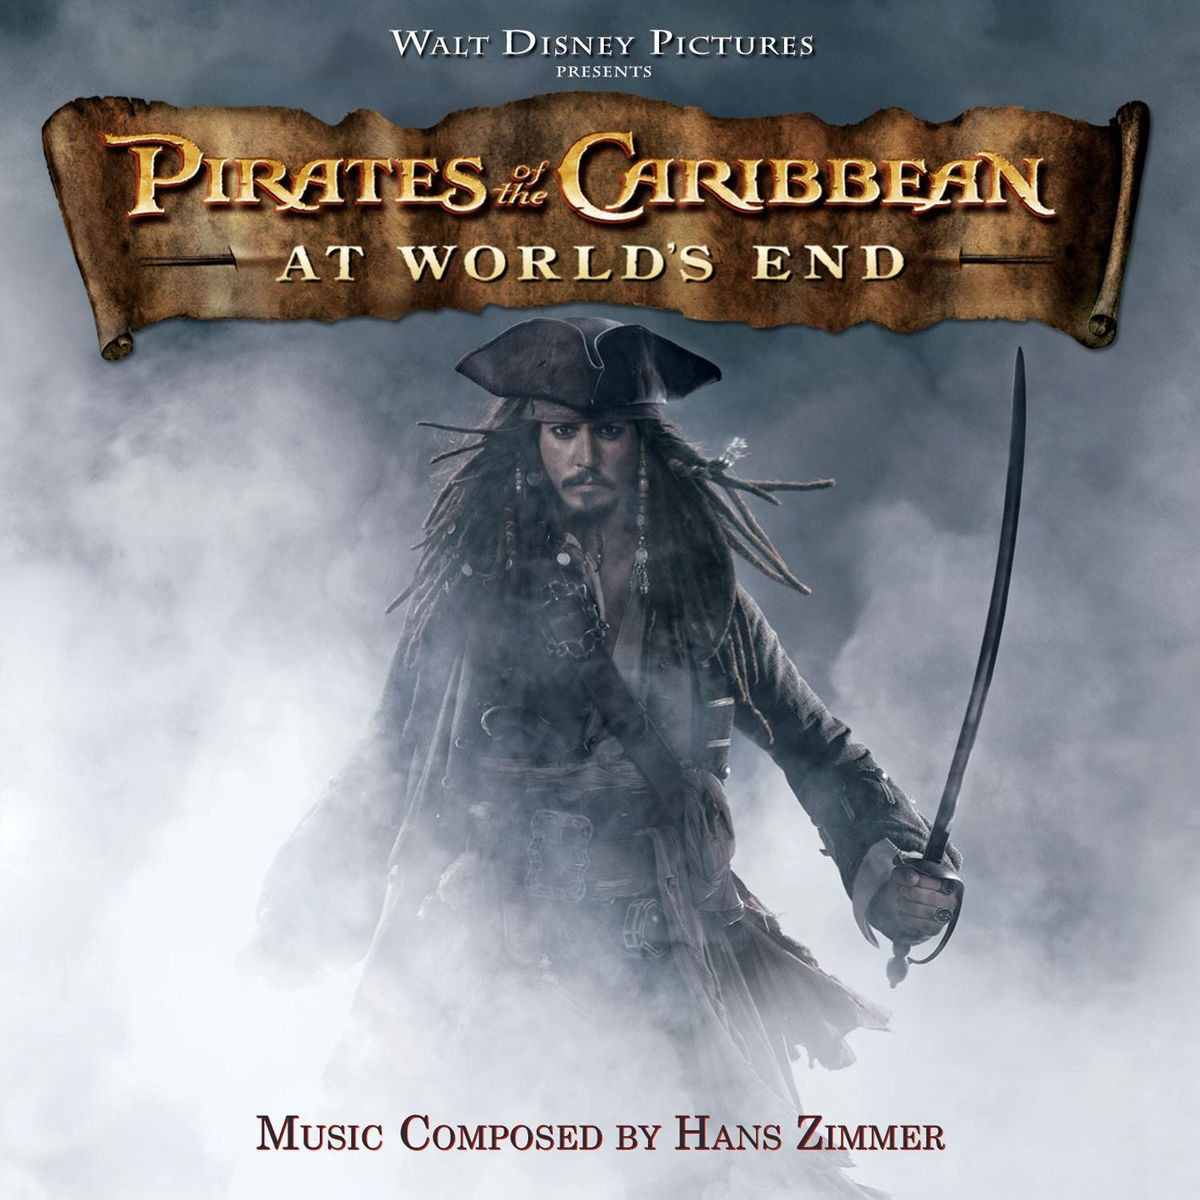 Hans Zimmer - Pirates of the Caribbean: At World's End CD - 00946 3957032